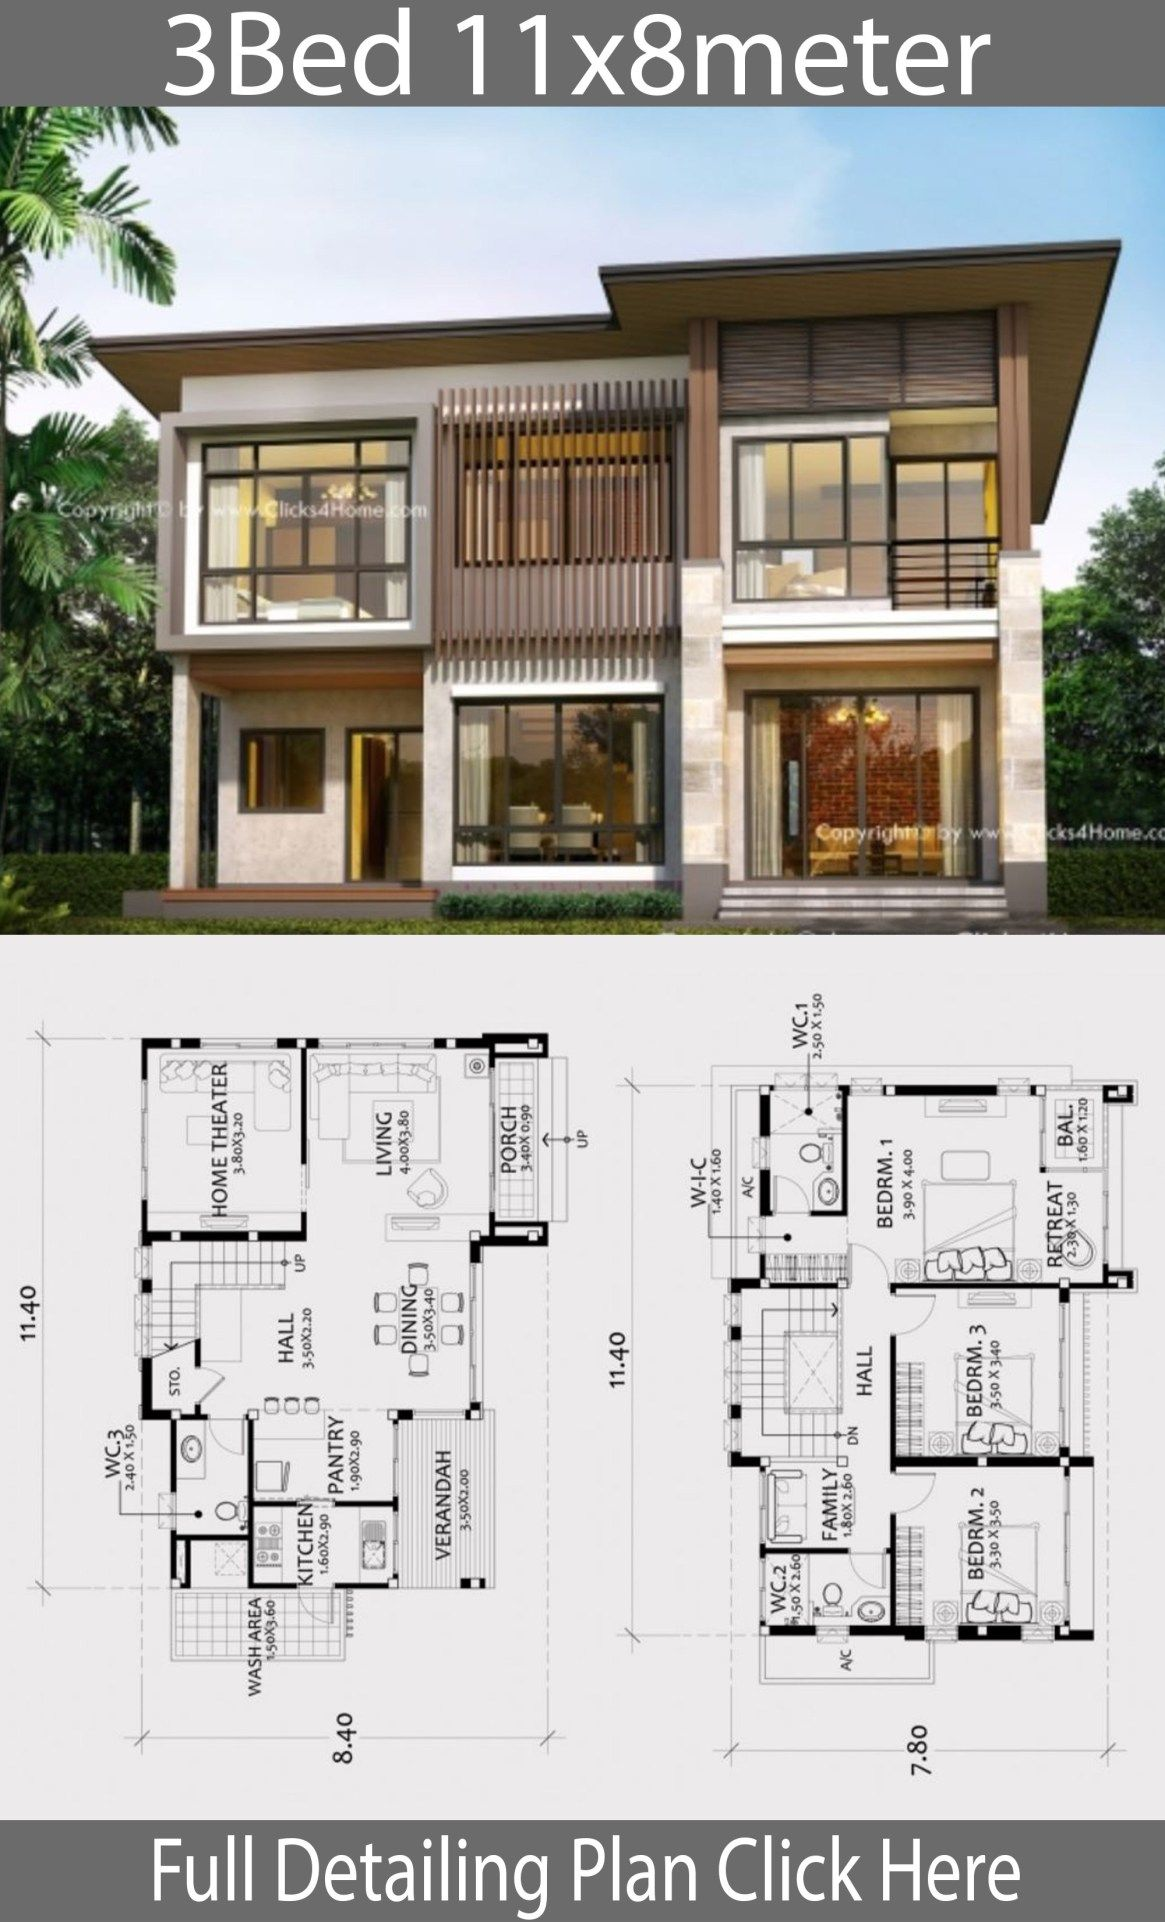 Home Design Plan 11x8m With 3 Bedrooms Home Design With Plansearch Mediterranean Homes Architectural House Plans Home Design Plan